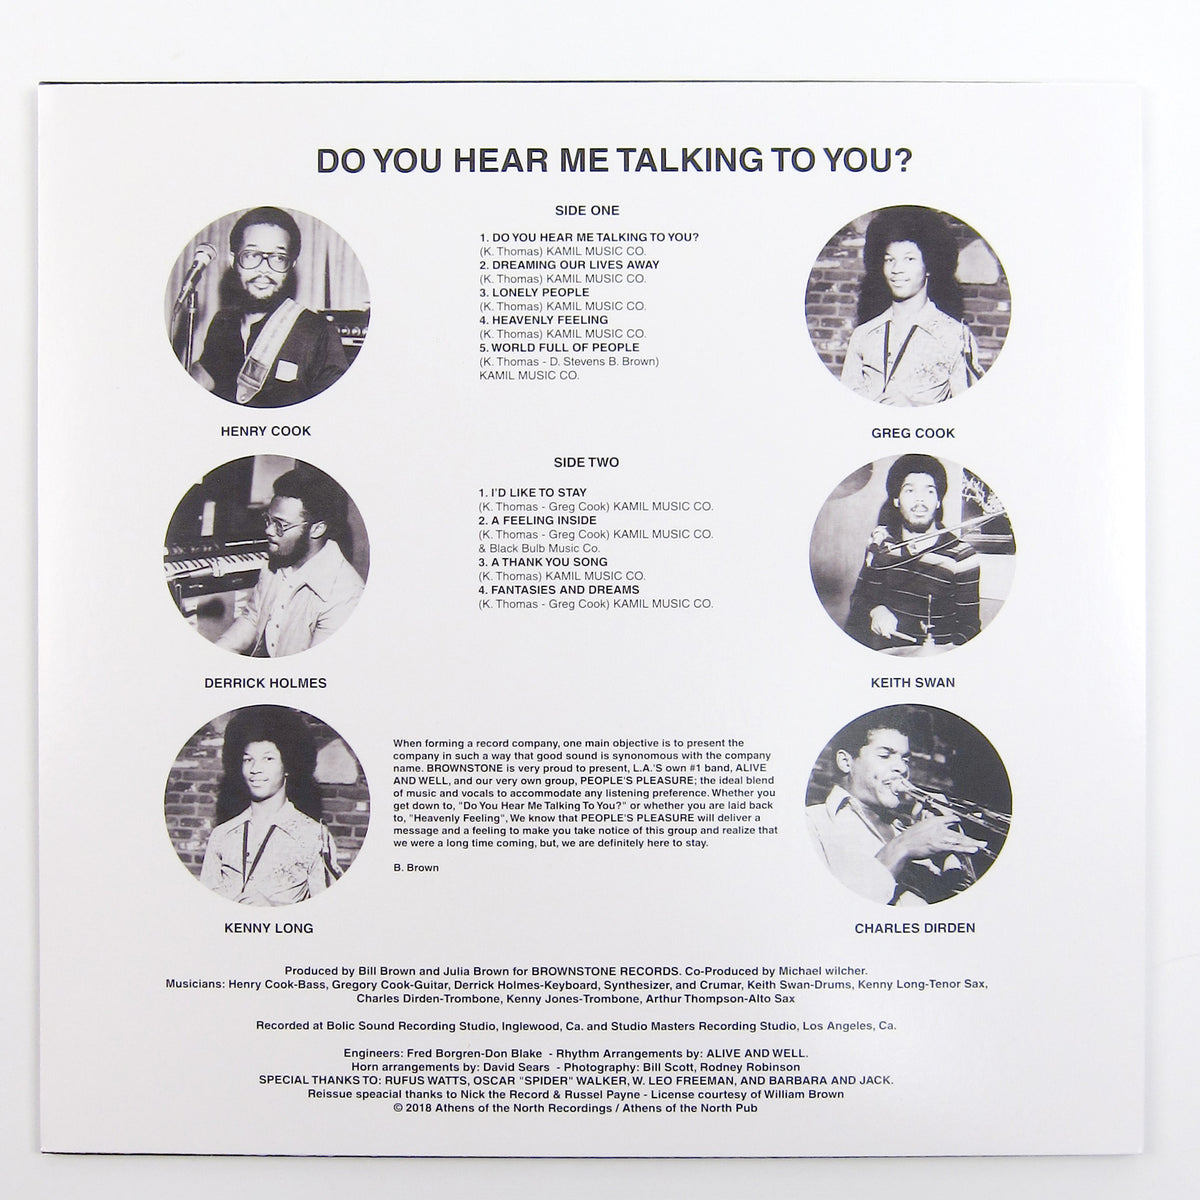 People's Pleasure With Alive And Well: Do You Hear Me Talking To You? Vinyl LP